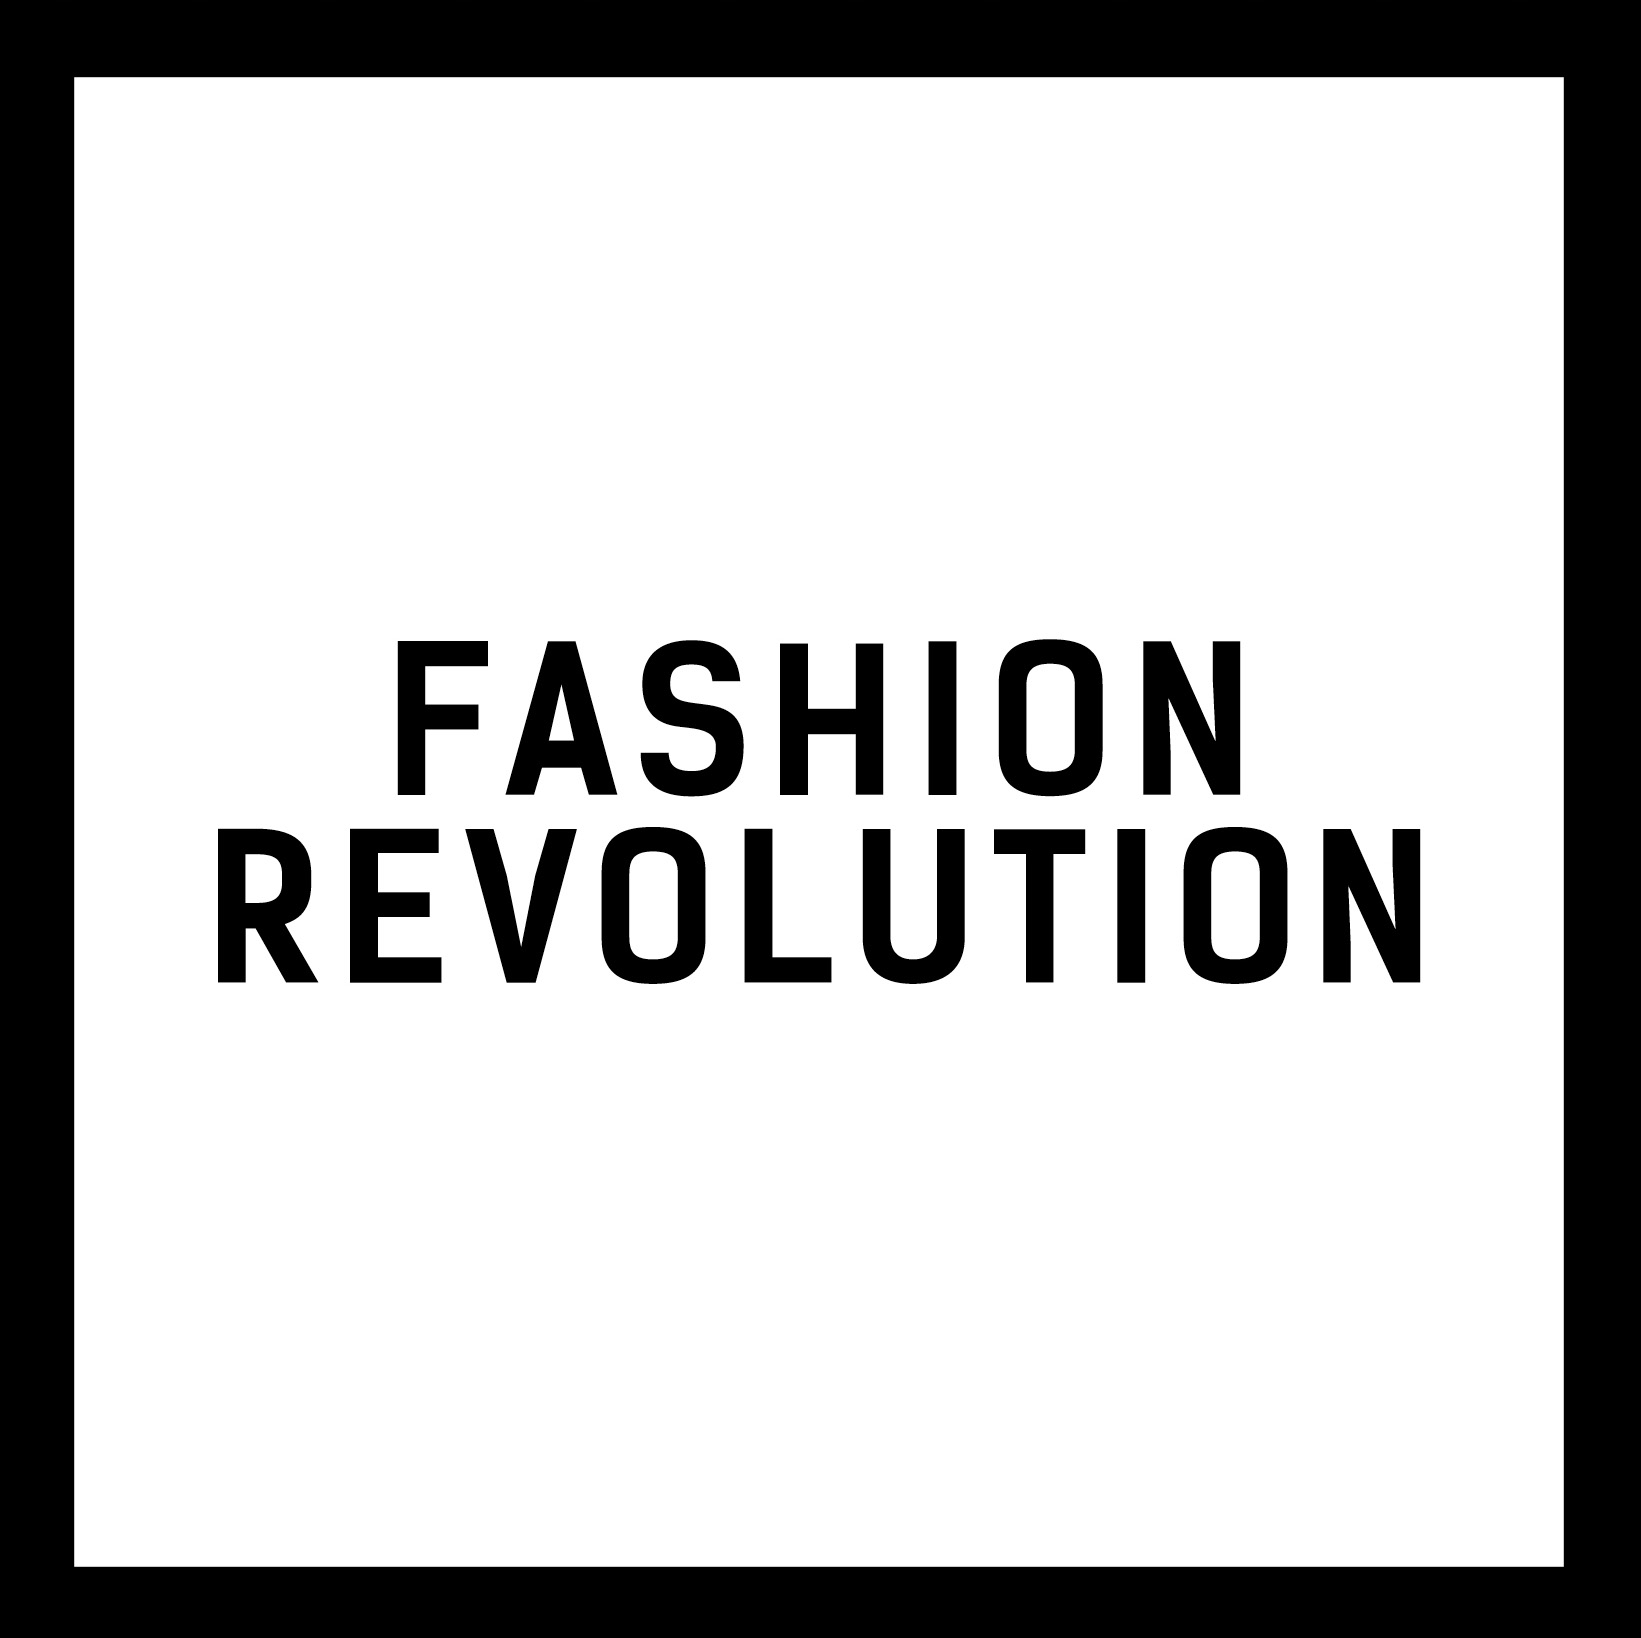 fashion revolution logo.jpg